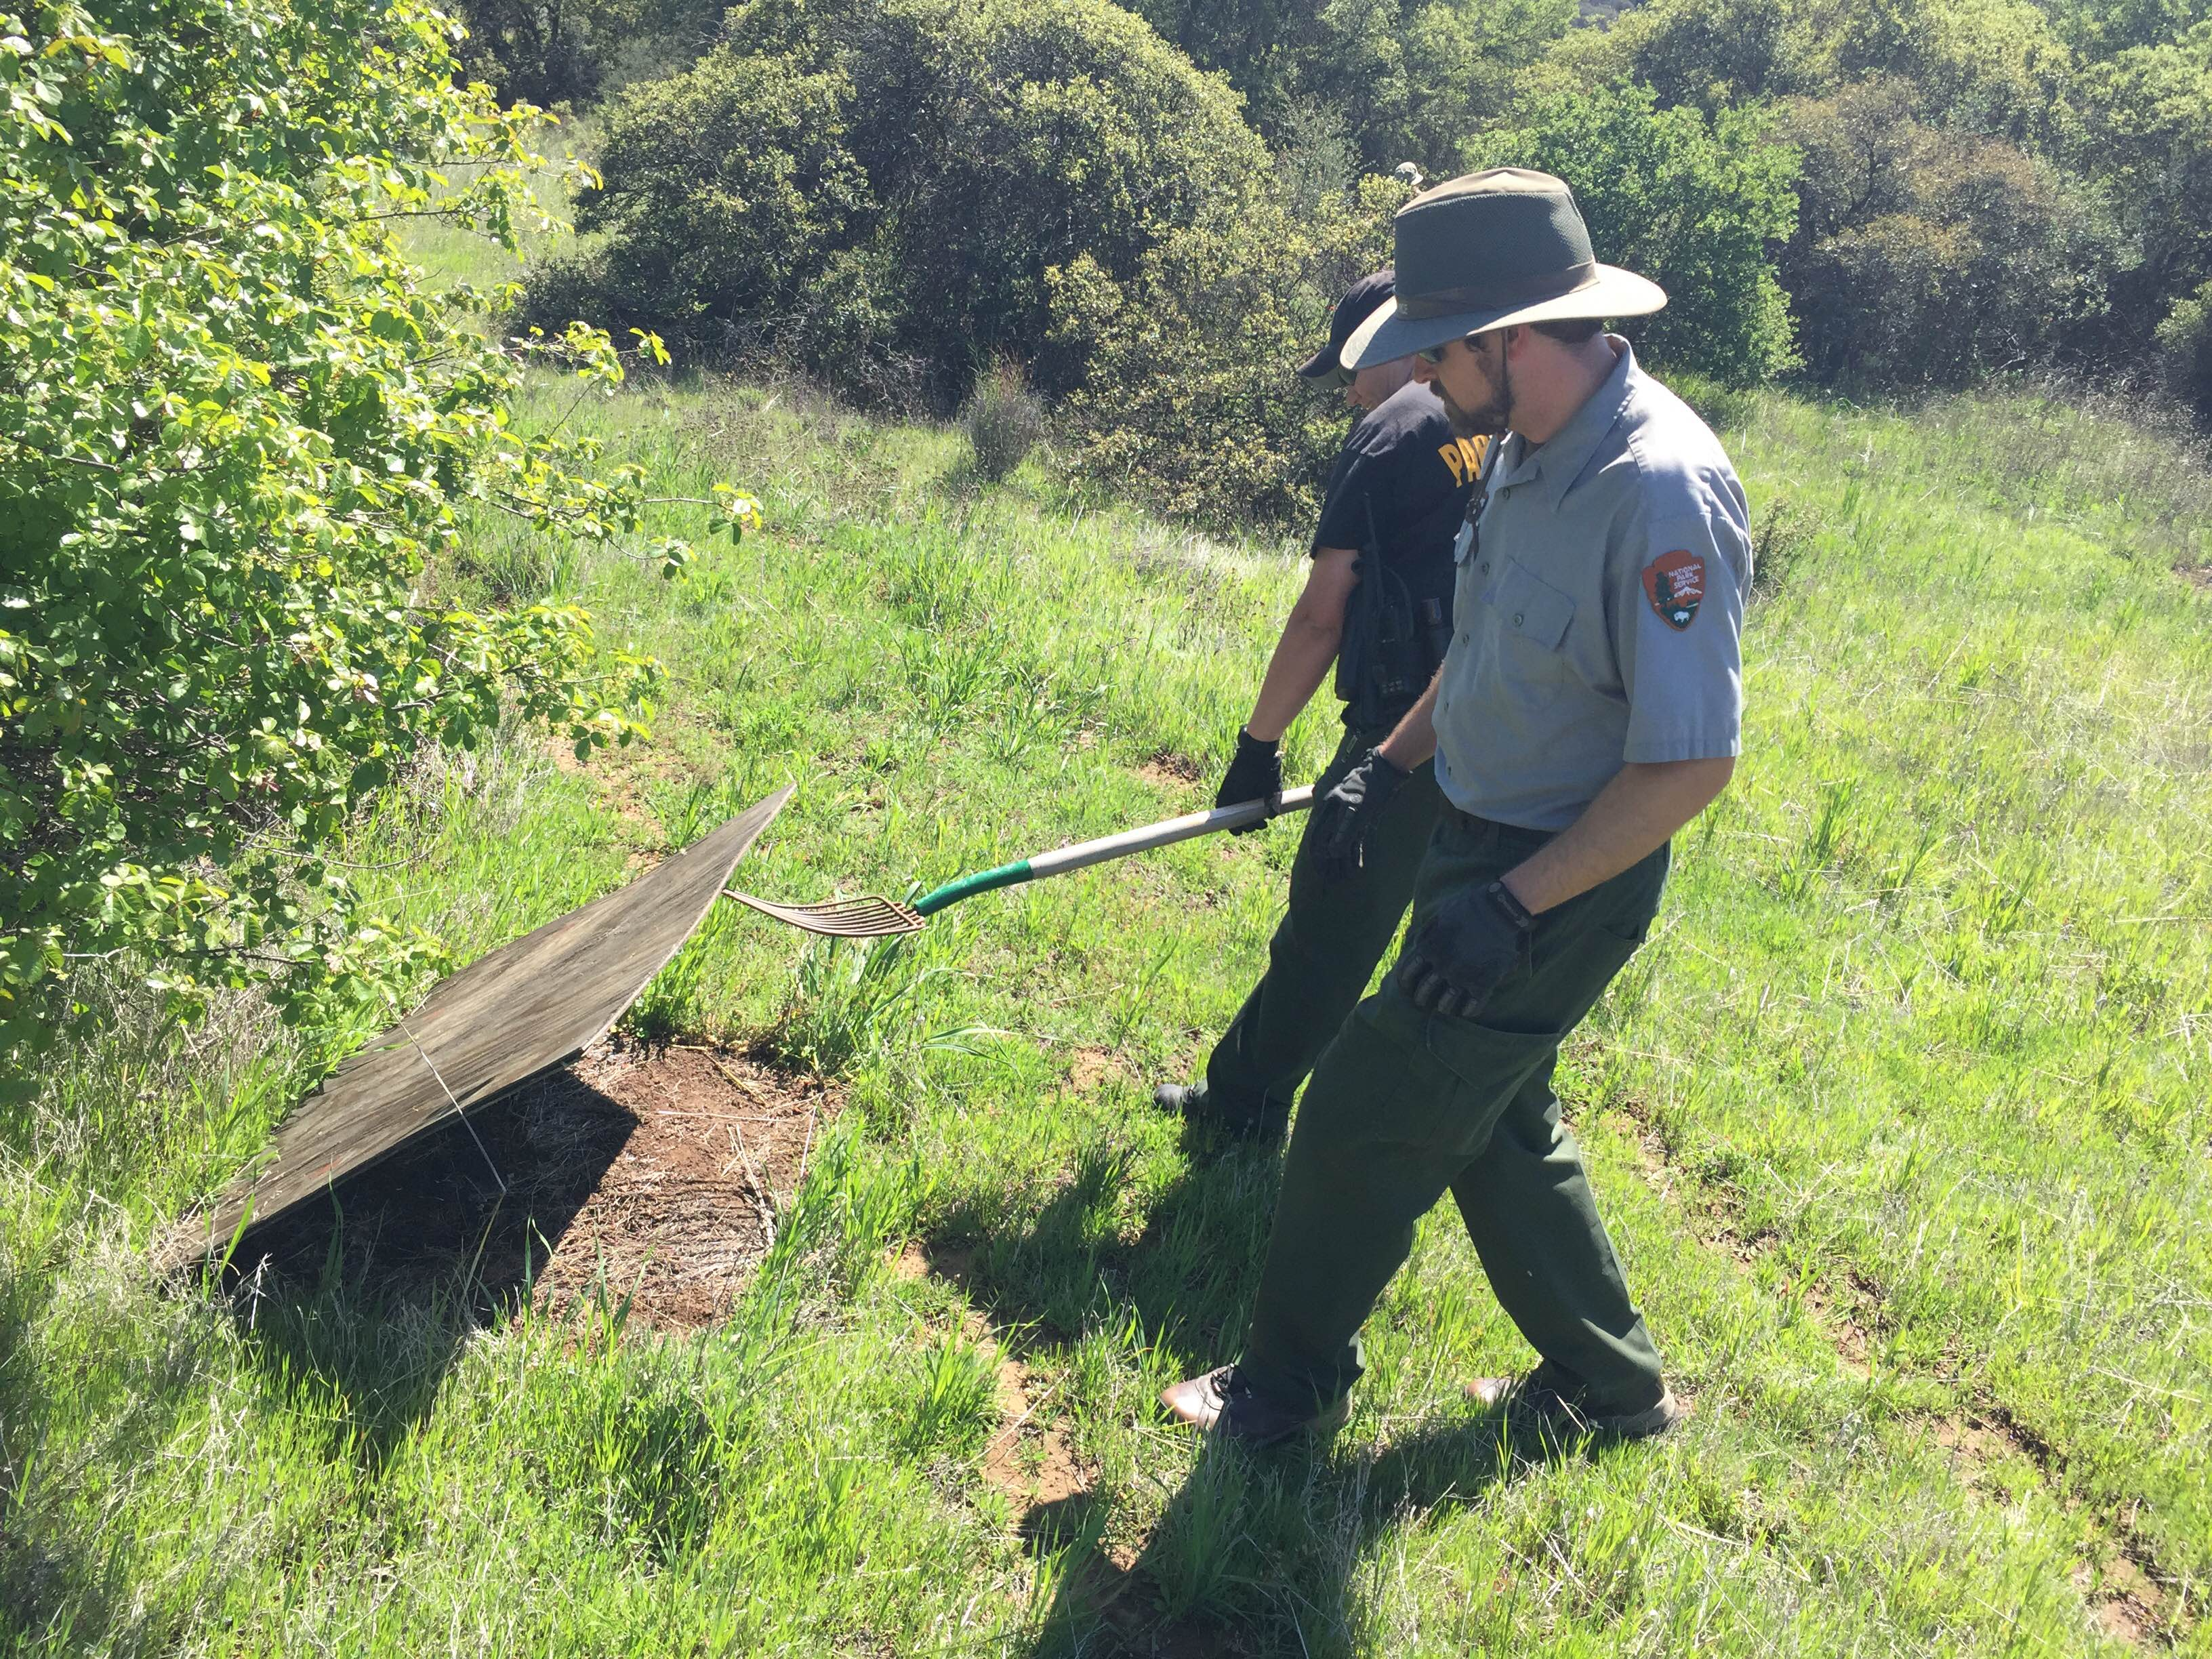 Rangers carefully lift a plywood board during a clean-up. (Photo: National Park Service)